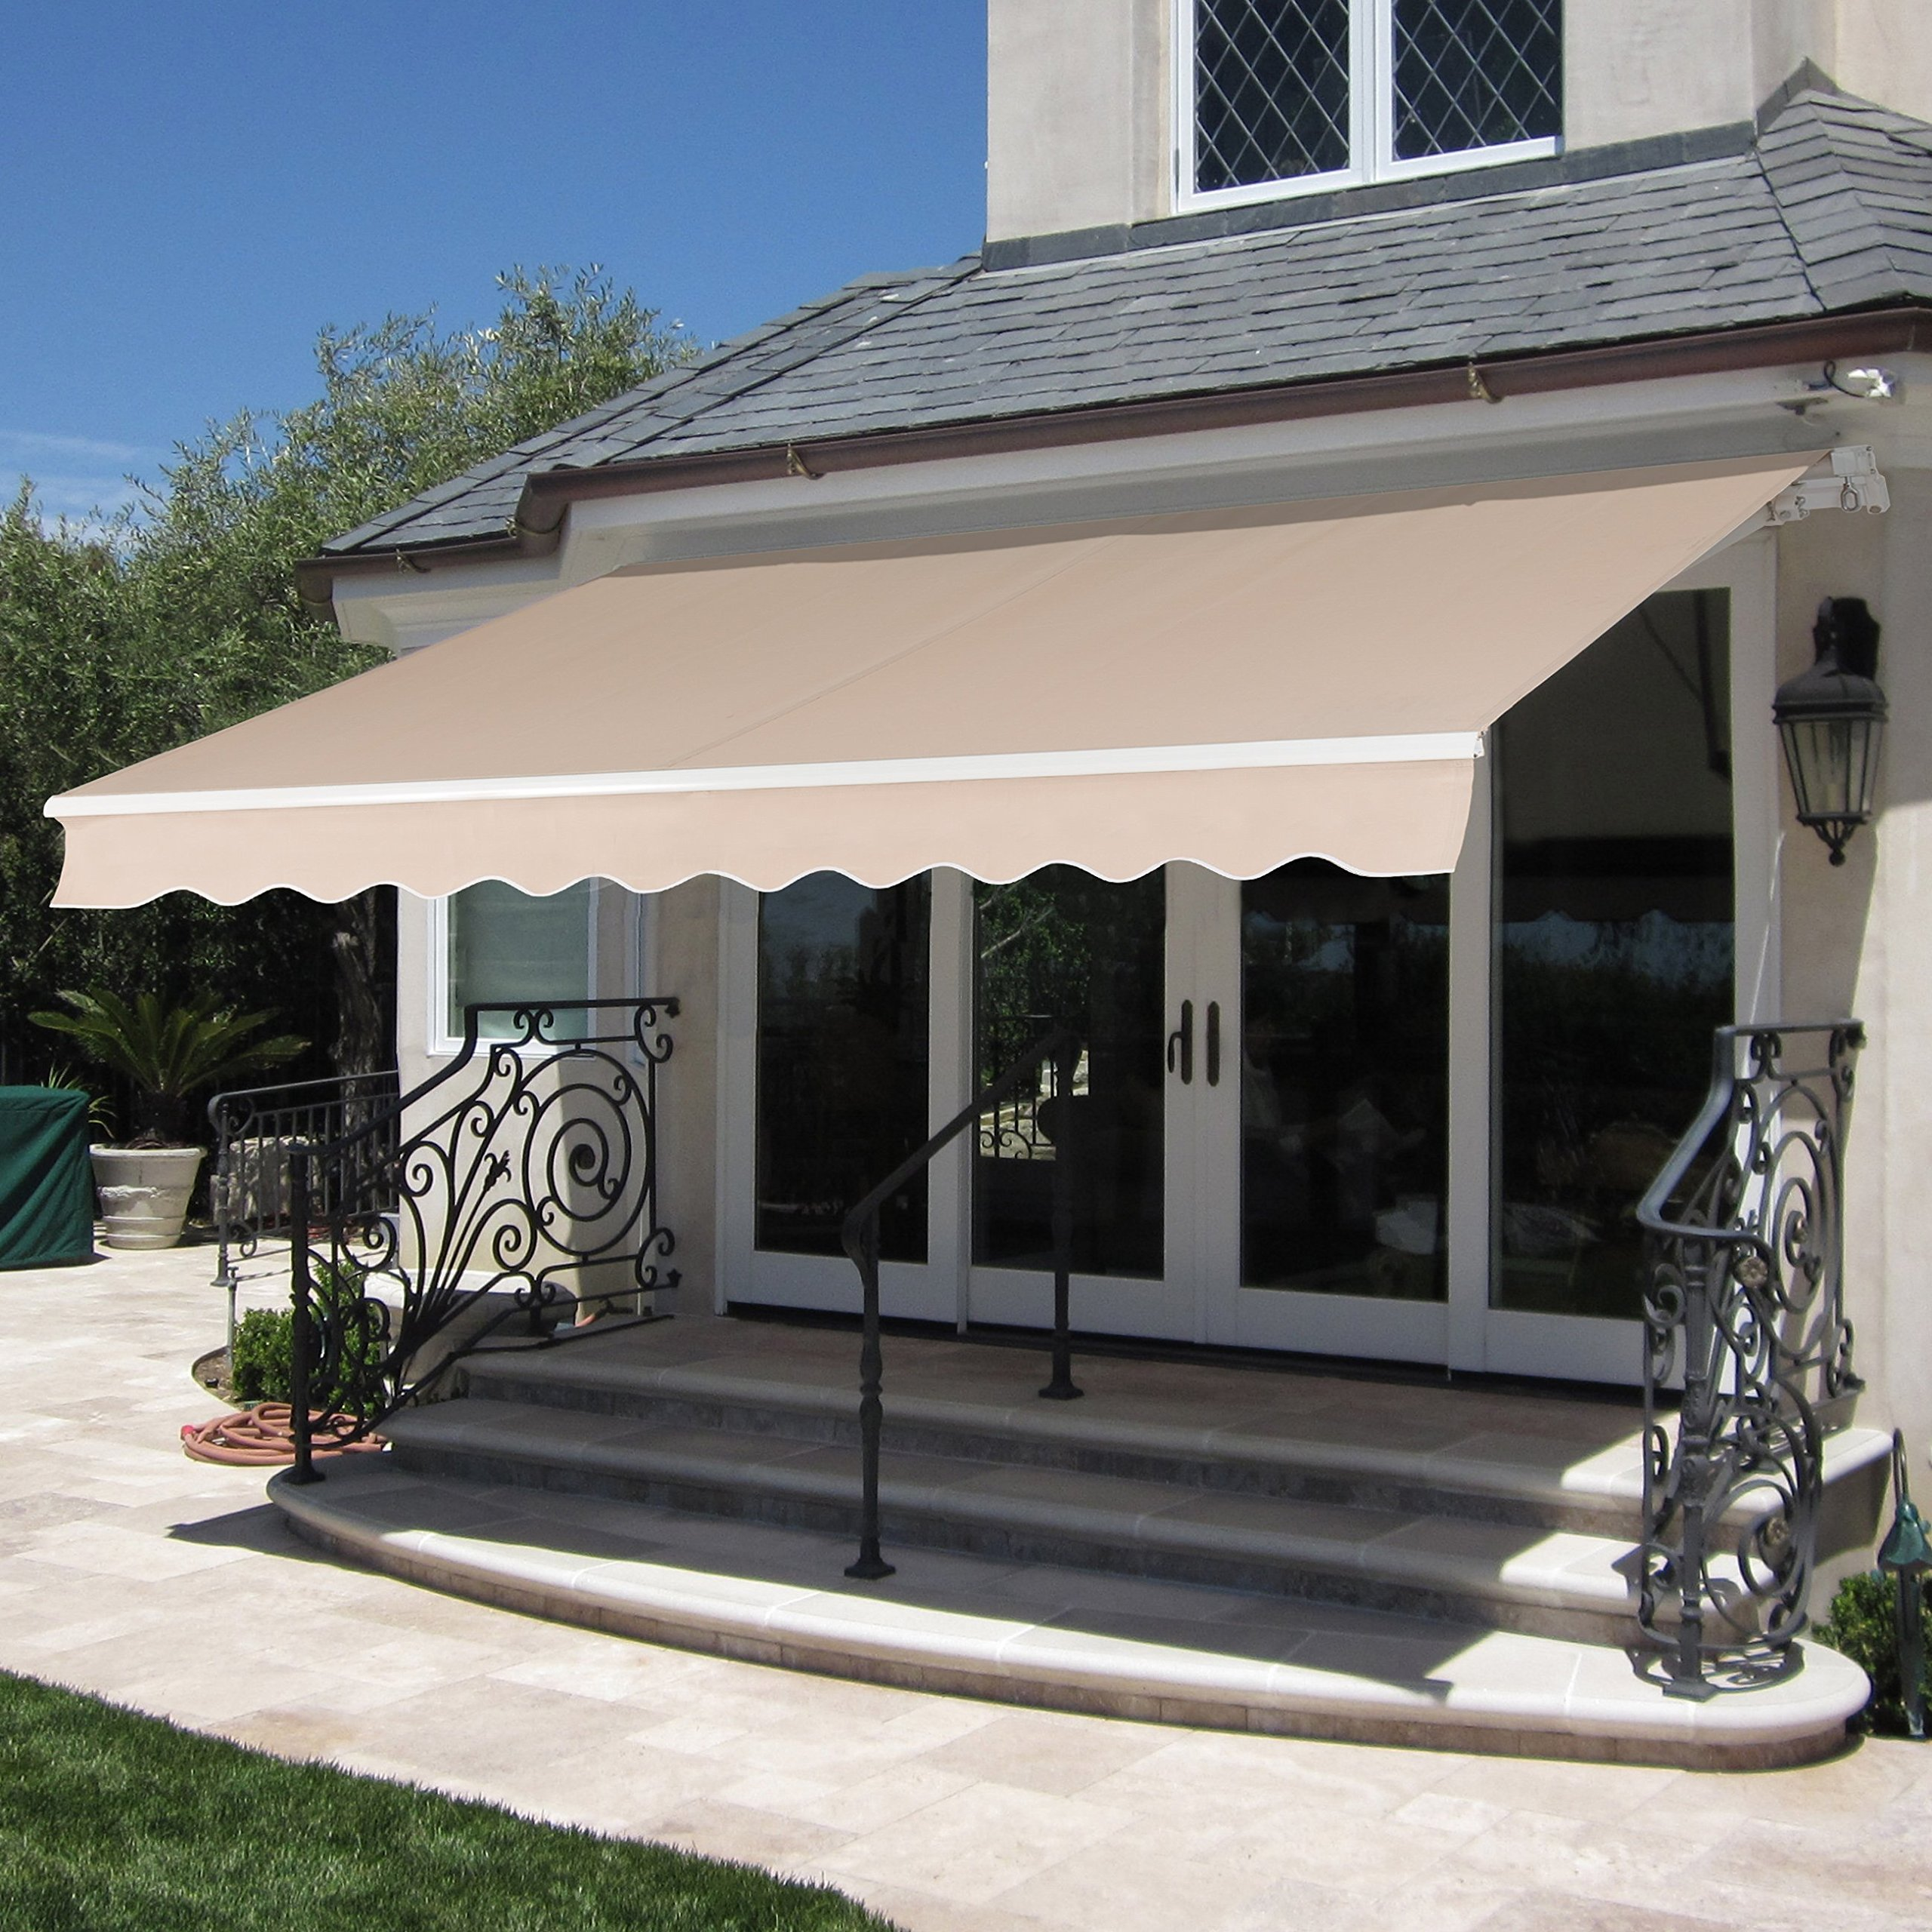 Best Choice Products Patio Manual Patio 8.2'x6.5' Retractable Deck Awning Sunshade Shelter Canopy Beige by Best Choice Products